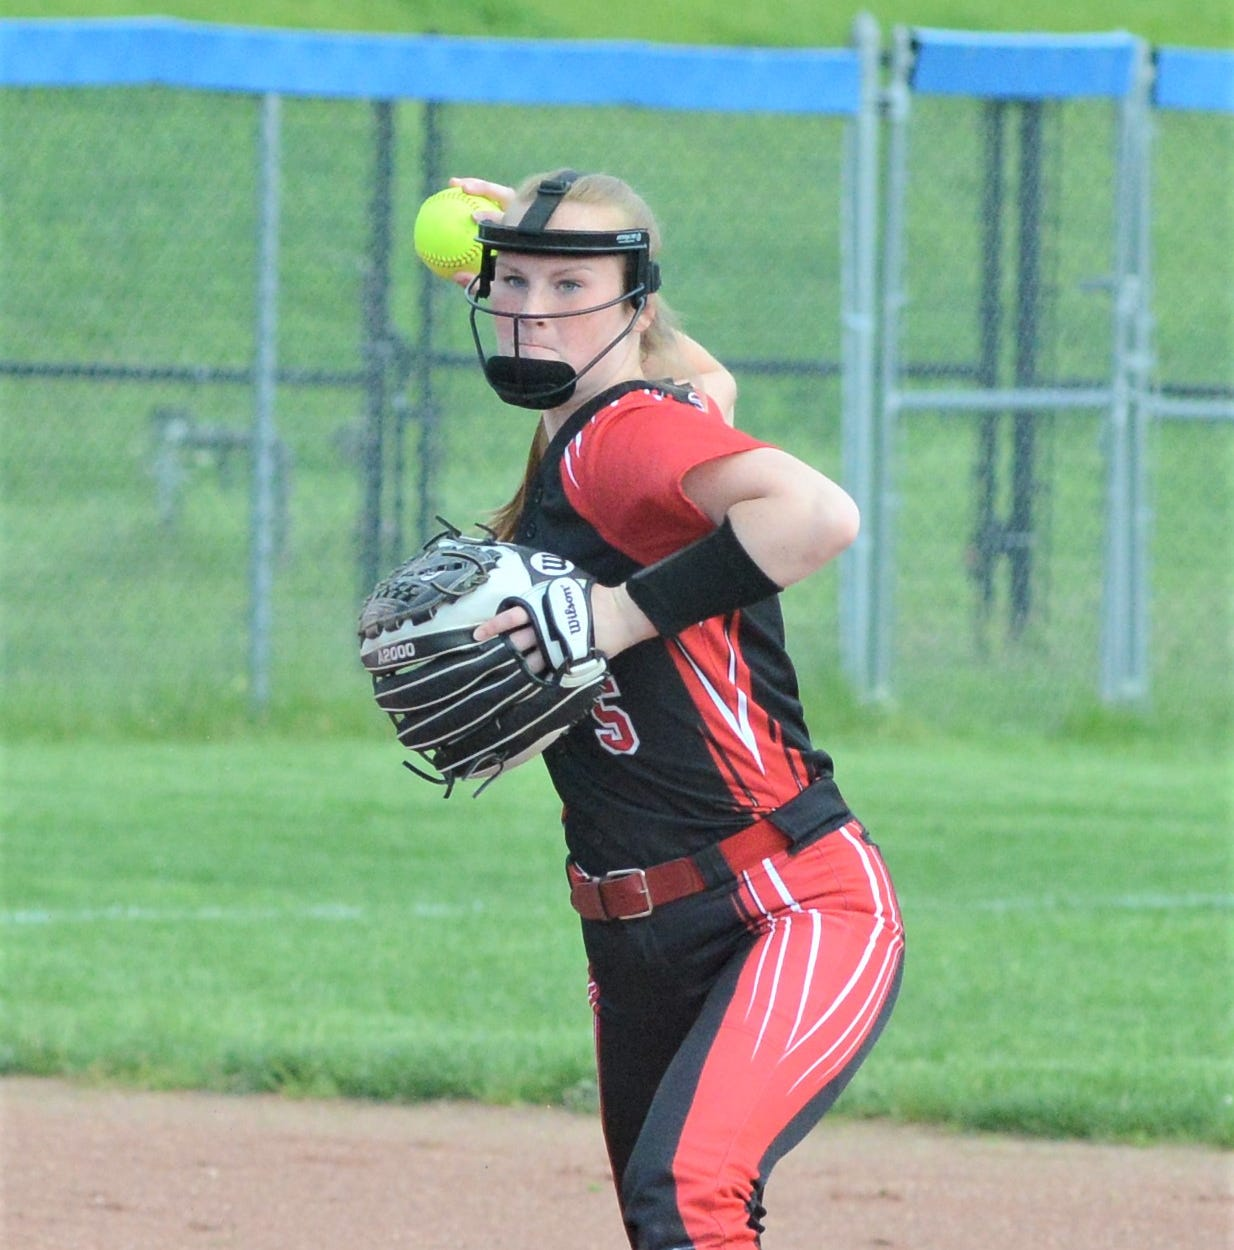 Colts end Coshocton's season; River View rallies to advance